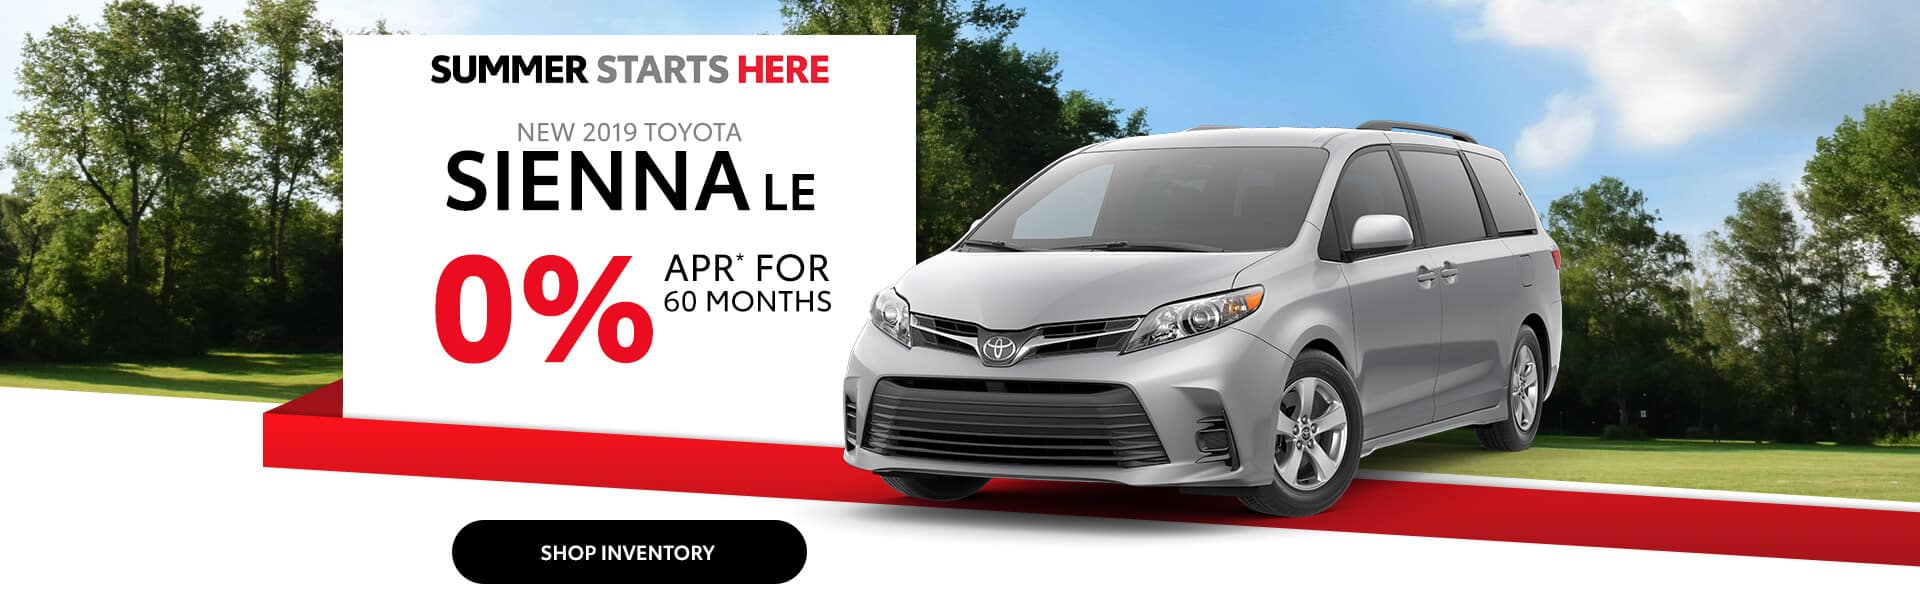 Finance a New Toyota Sienna at 0% APR near Indianapolis, Indiana.